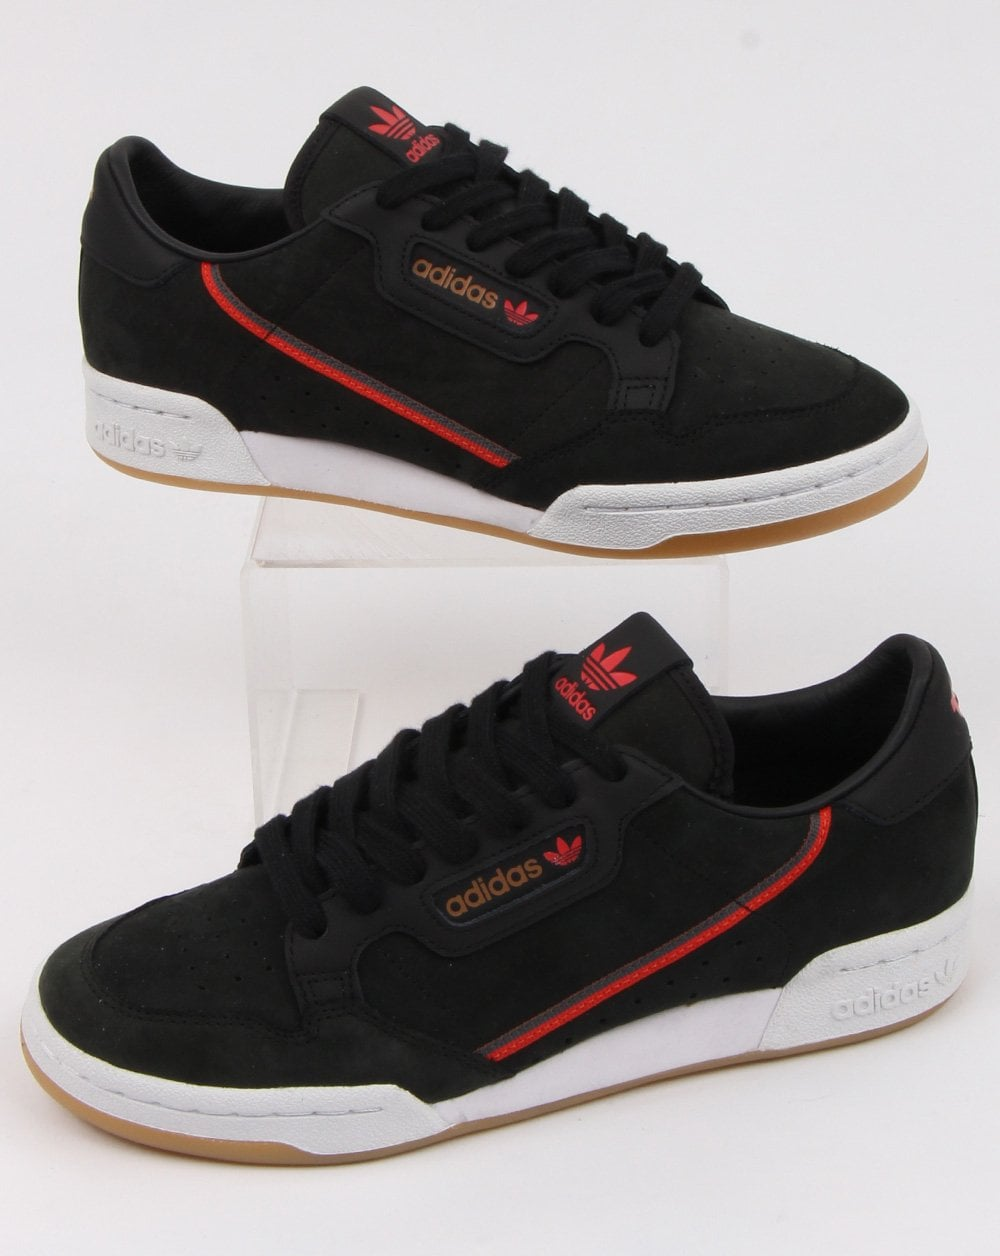 adidas Trainers Adidas Continental 80 x TFL Trainers Black red brown 4ad5127a0